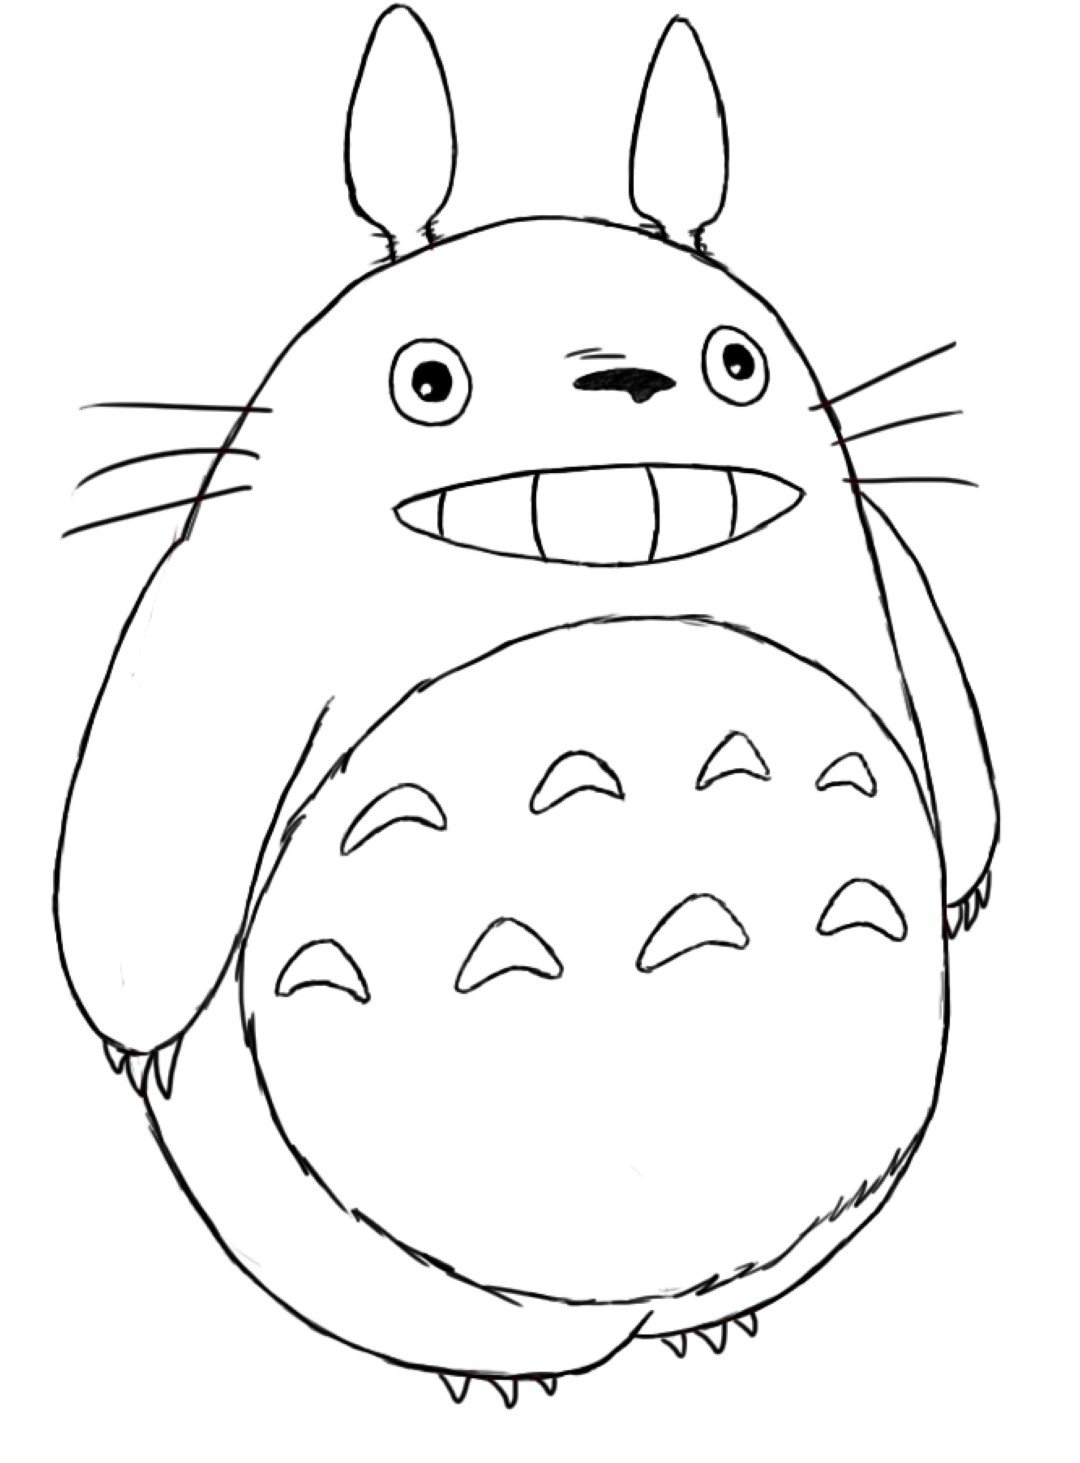 Totoro Coloring Pages All Disney Free